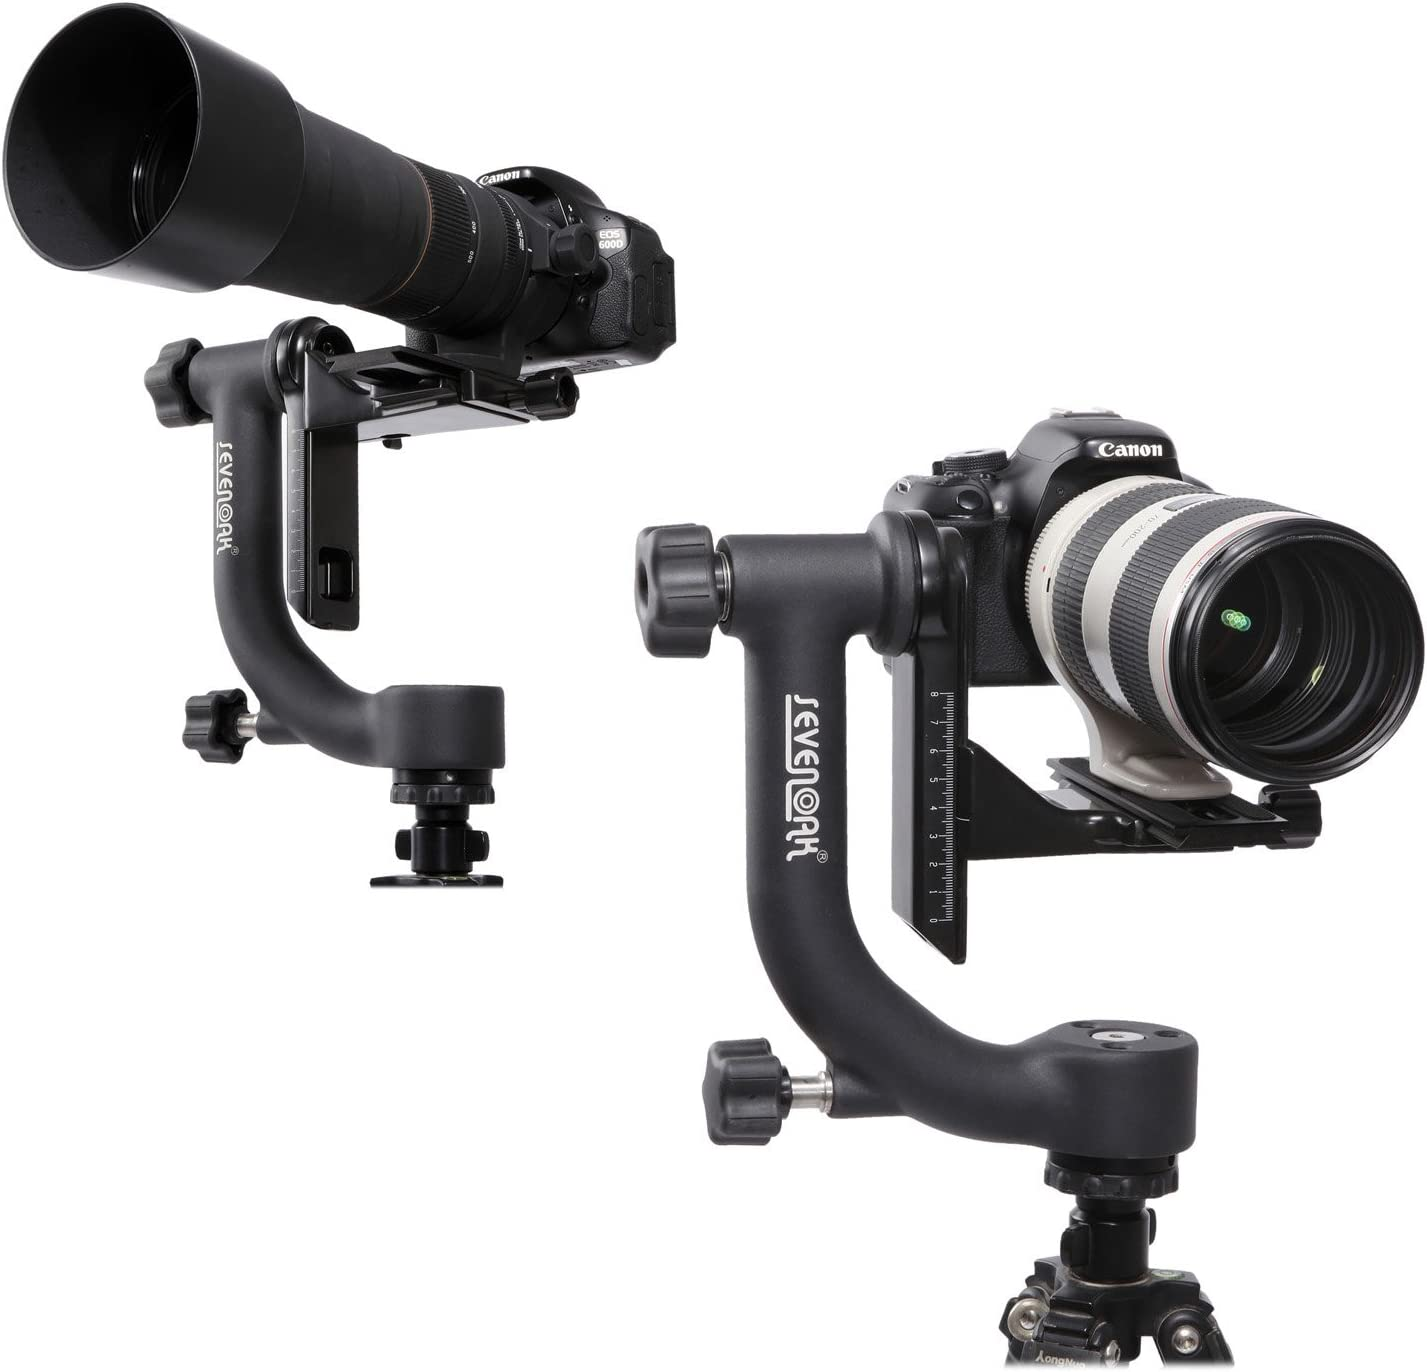 Camera Tripod Time Lapse Gimbal Head Heavy-Duty Panoramic Gimbal Head Arca-Swiss Quick-Release Plate for Canon Nikon Olympus Sony DSLR Cameras Camcorders Bird Wildlife Photography Movie Recorder